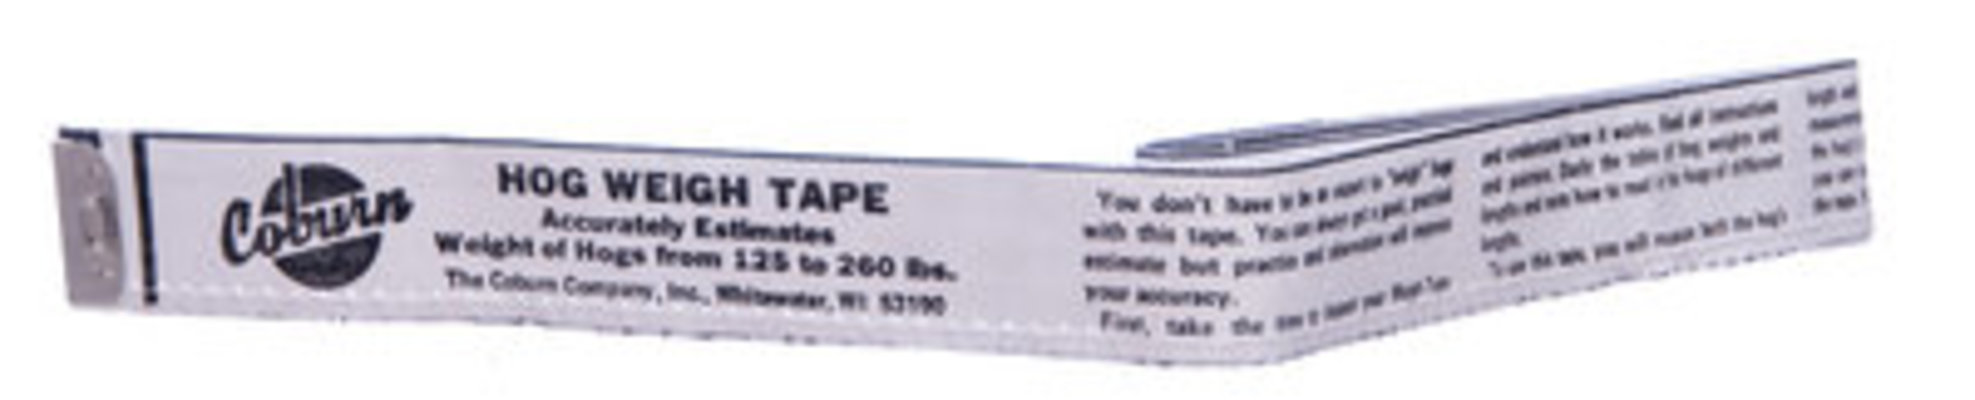 Hog Weigh Tape